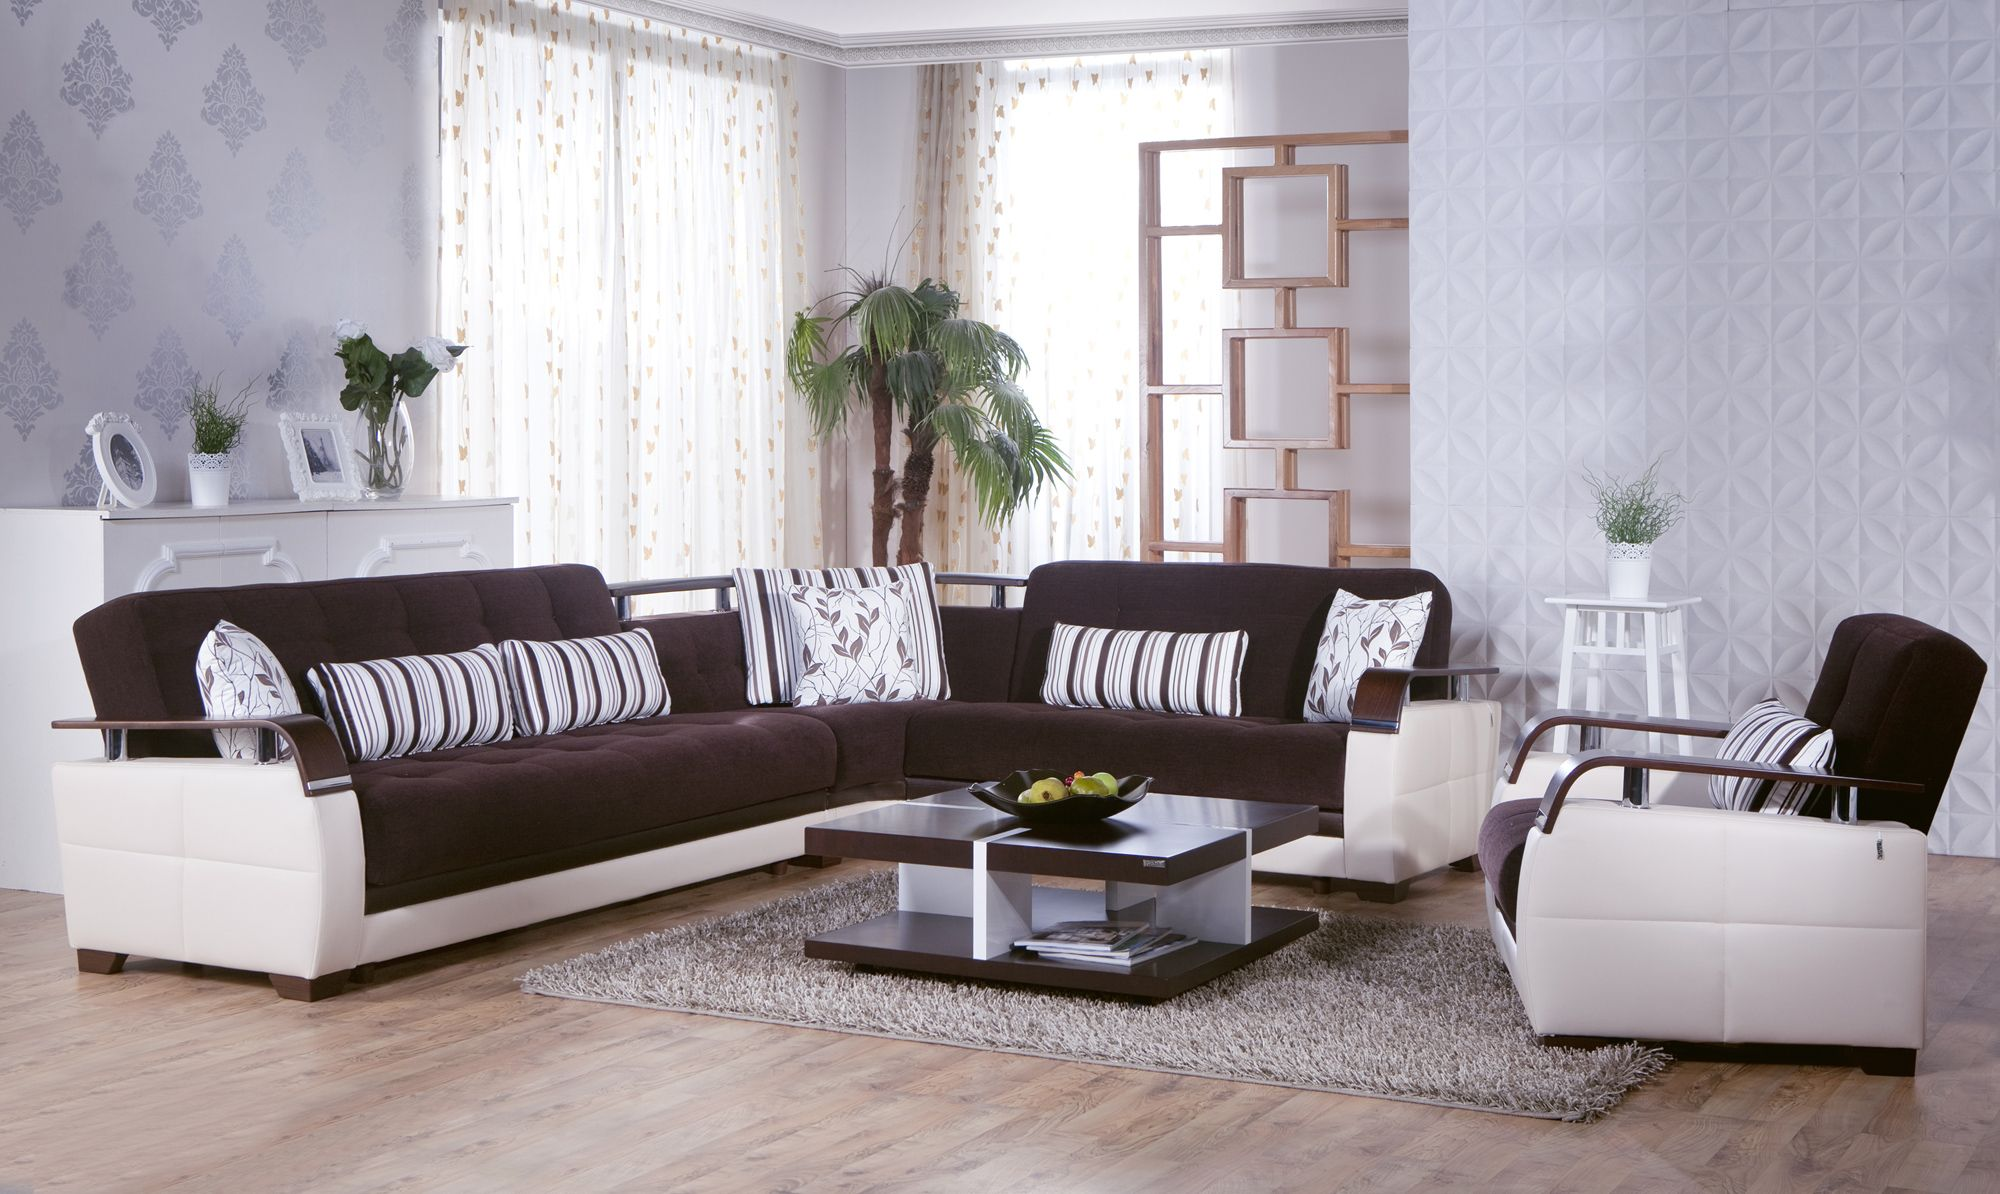 images clearance sectional full sleeper with cover reclinermicrofiber brown of sofa bedmicrofiber microfiber size on sofas design sleepermicrofiber chaise best